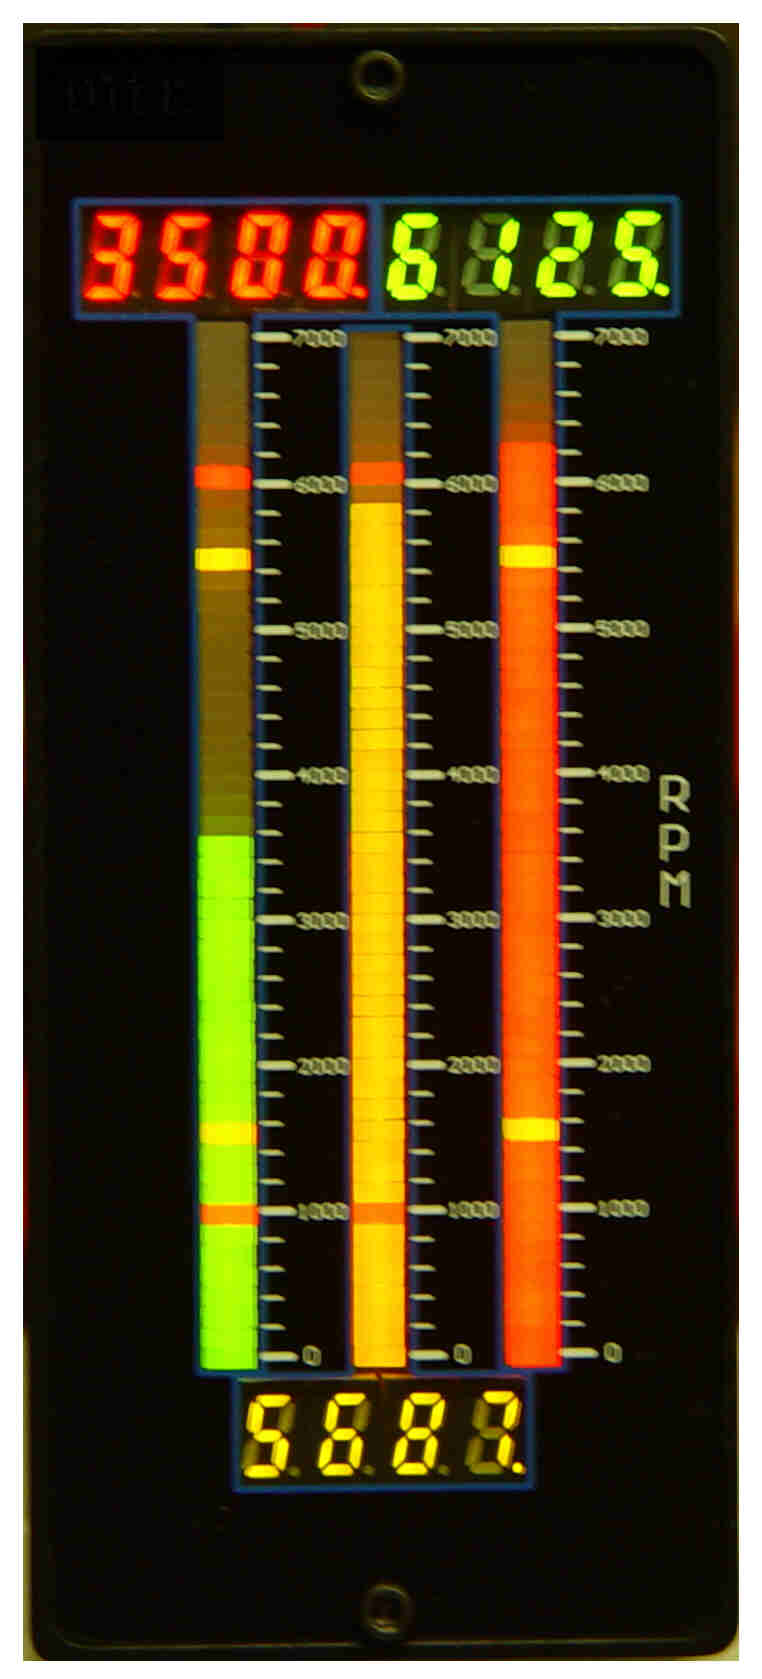 Tri-Color LED bargraph meter replaces Foxboro 257 series